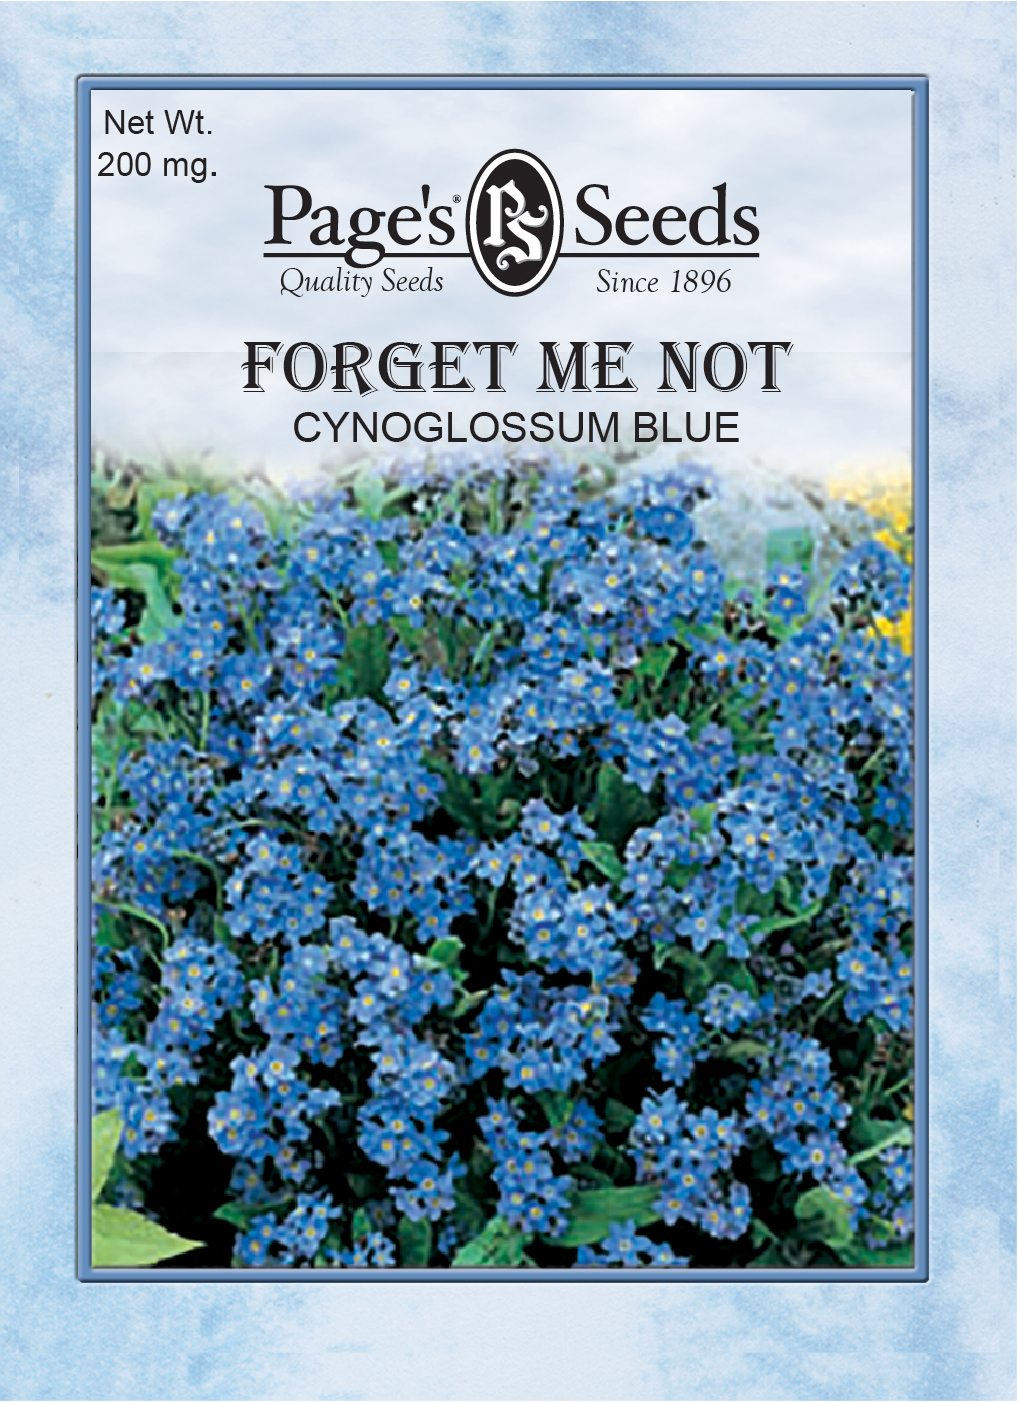 Forget Me Not Cynoglossum Blue The Page Seed Company Inc